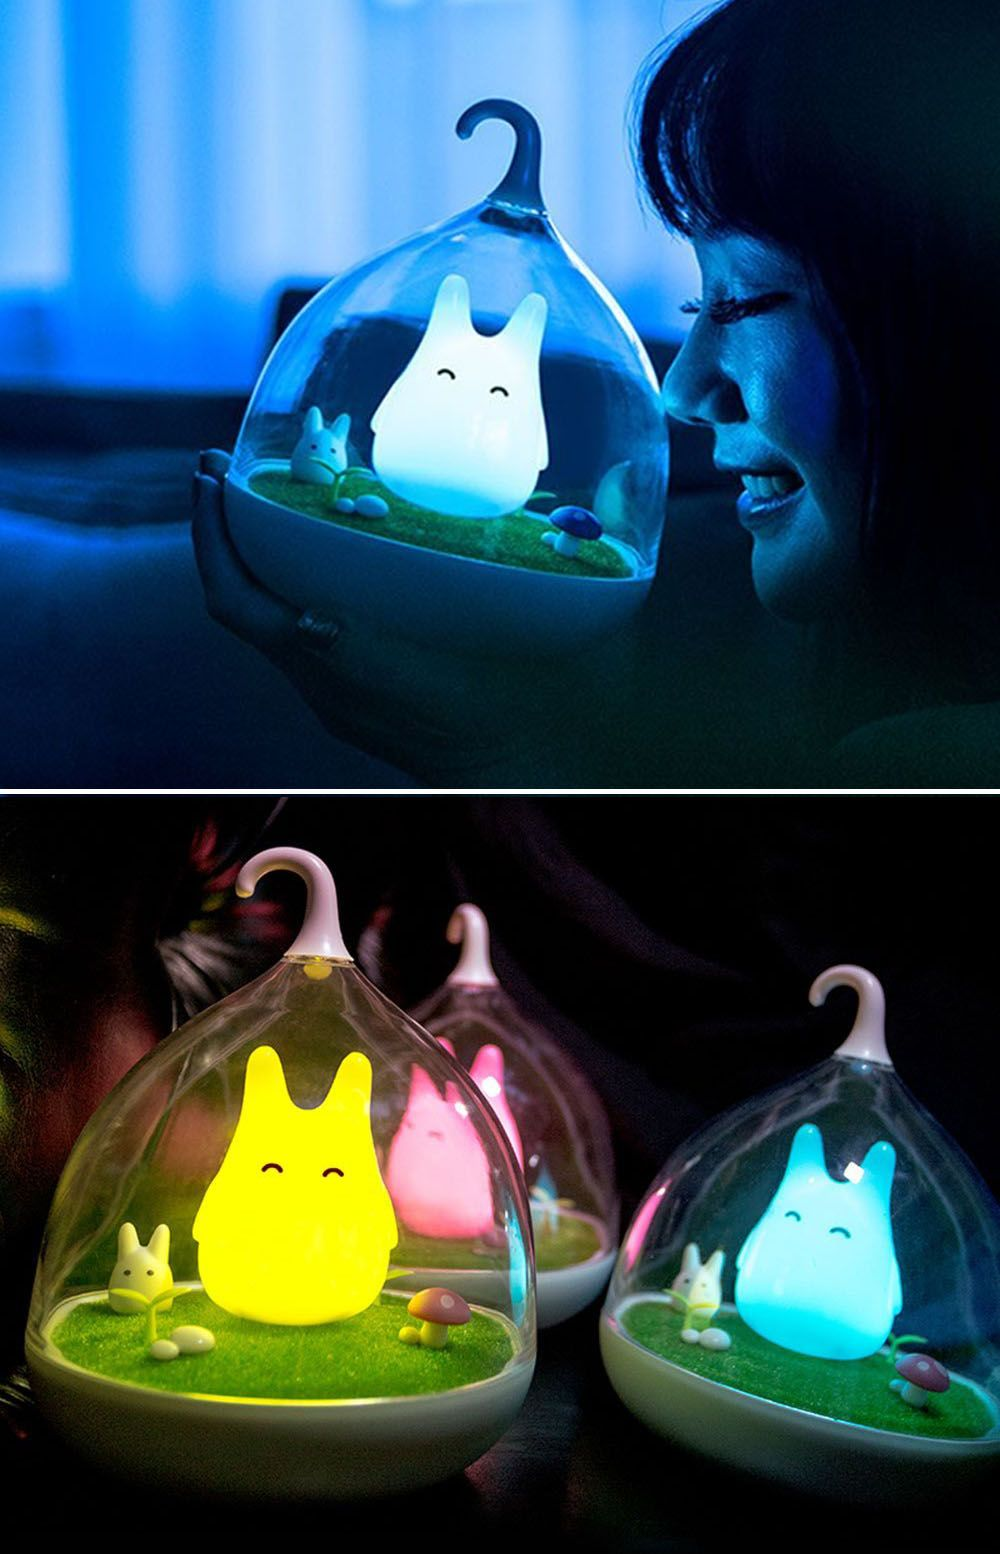 Led Night Lights 2019 Fashion Emoji Cute Unique Home Decoration 3d Poor Expression Led Touch Night Light 7 Color Changing Remote Control New Year Gift Present